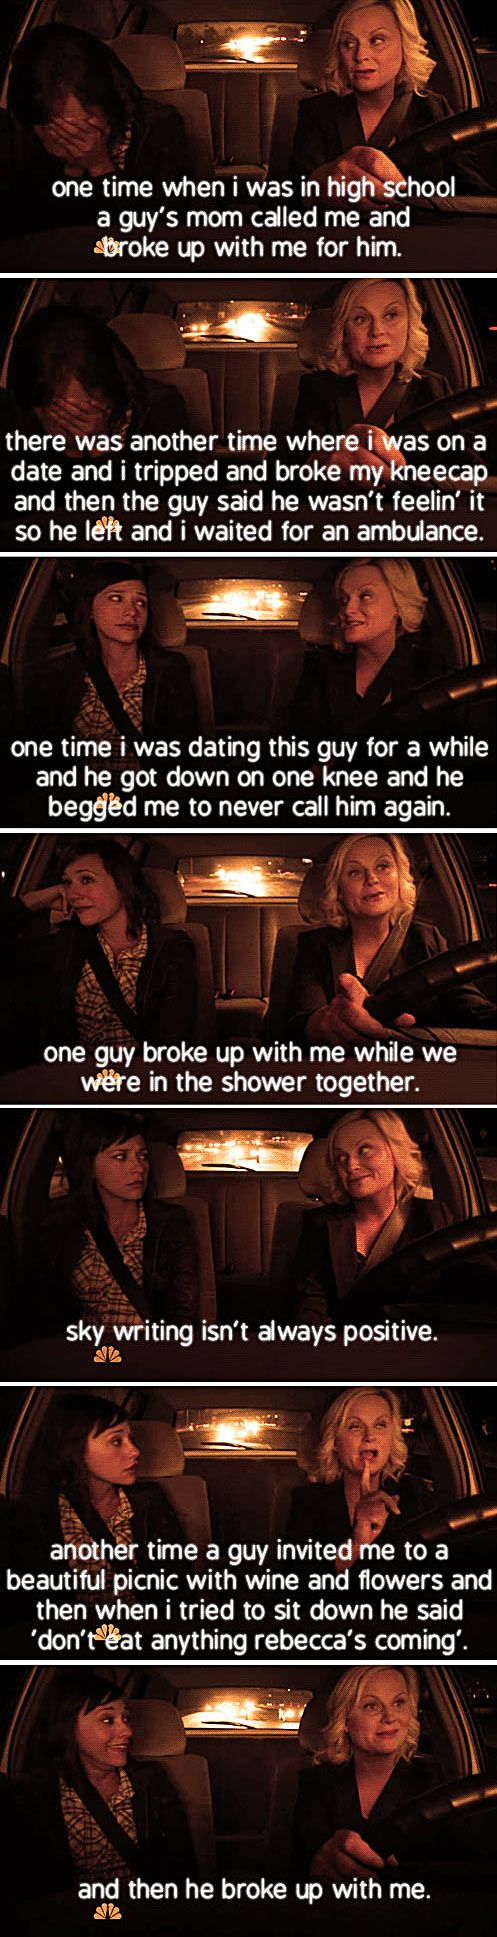 Leslie Knope's Breakups…unfortunately this hits way too close to home...